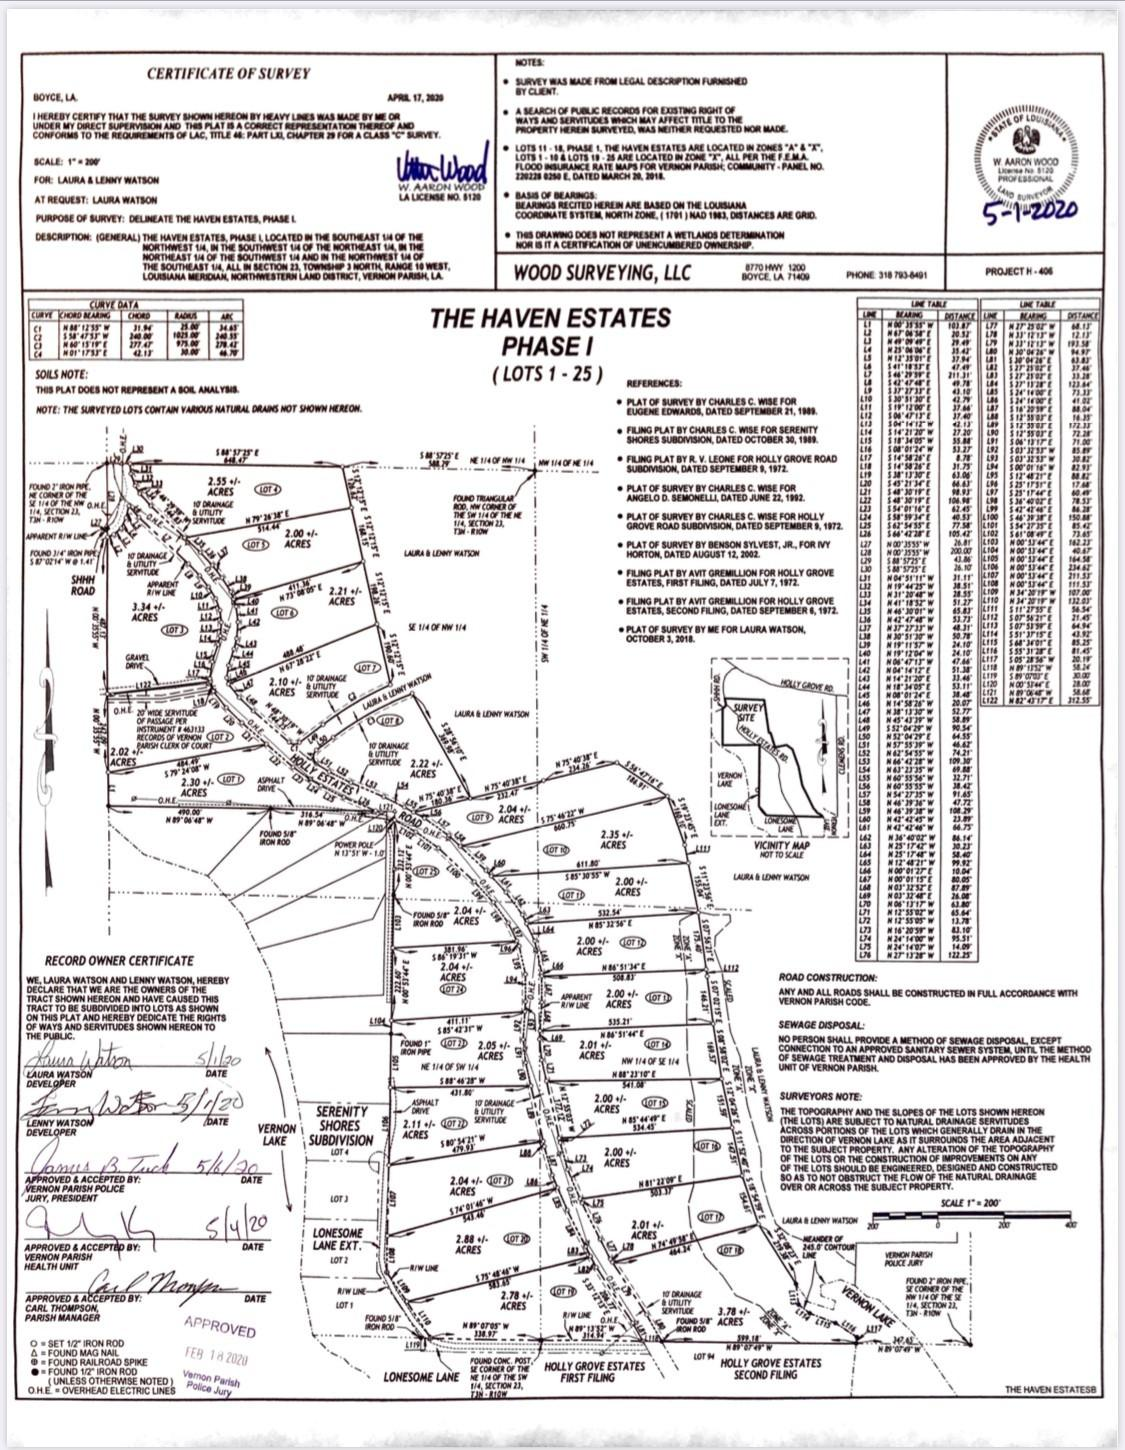 Anacoco land for sale,  Lot 24 Holly Estates Road, Anacoco LA - $50,000